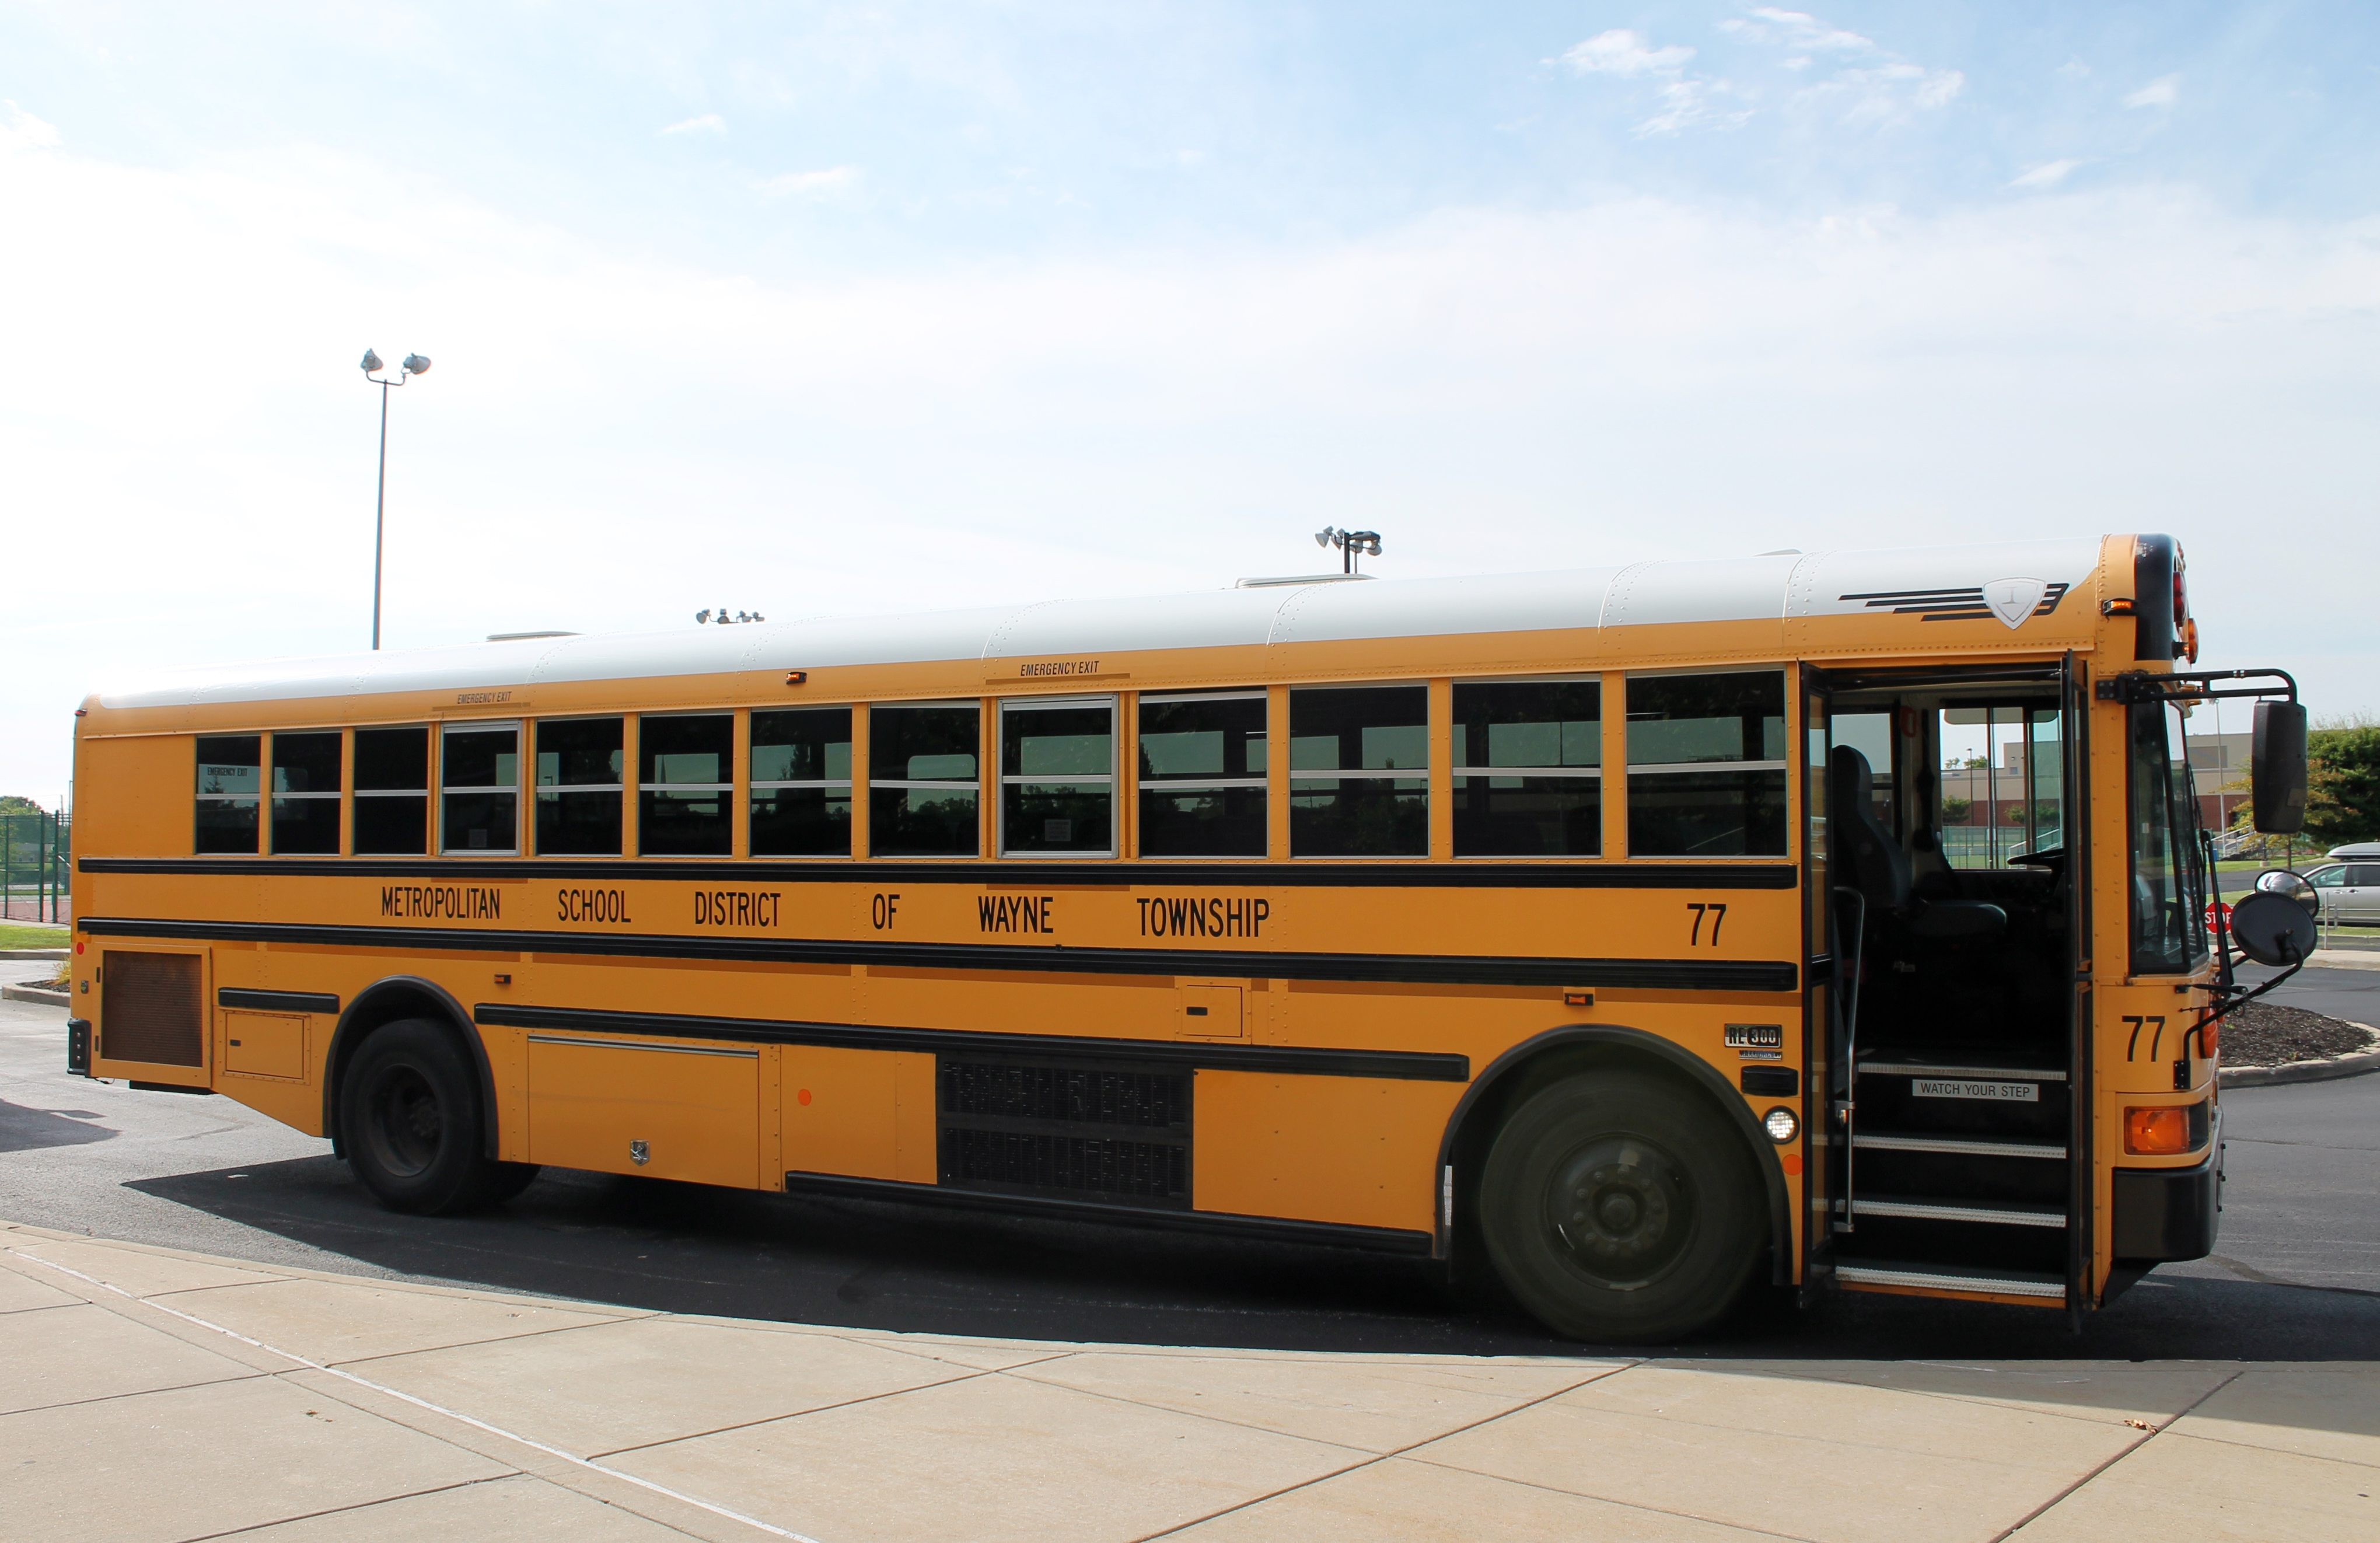 Every year, Wayne Township takes new teachers on a bus tour of the community as part of new teachers' orientation to the district.